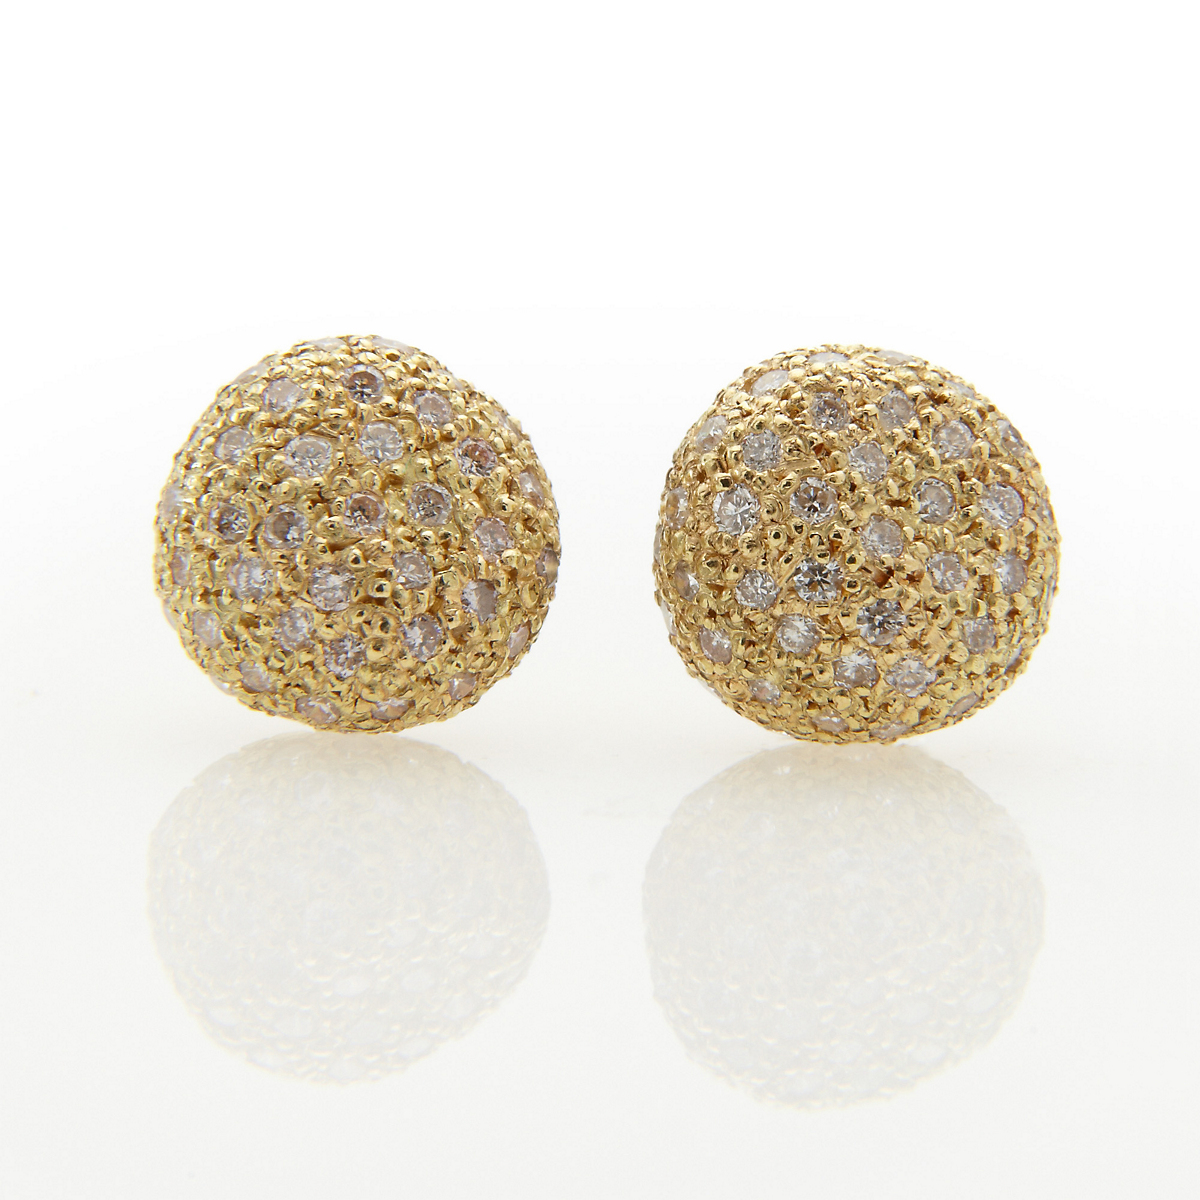 John Iversen Pave Diamond Bubble Earrings